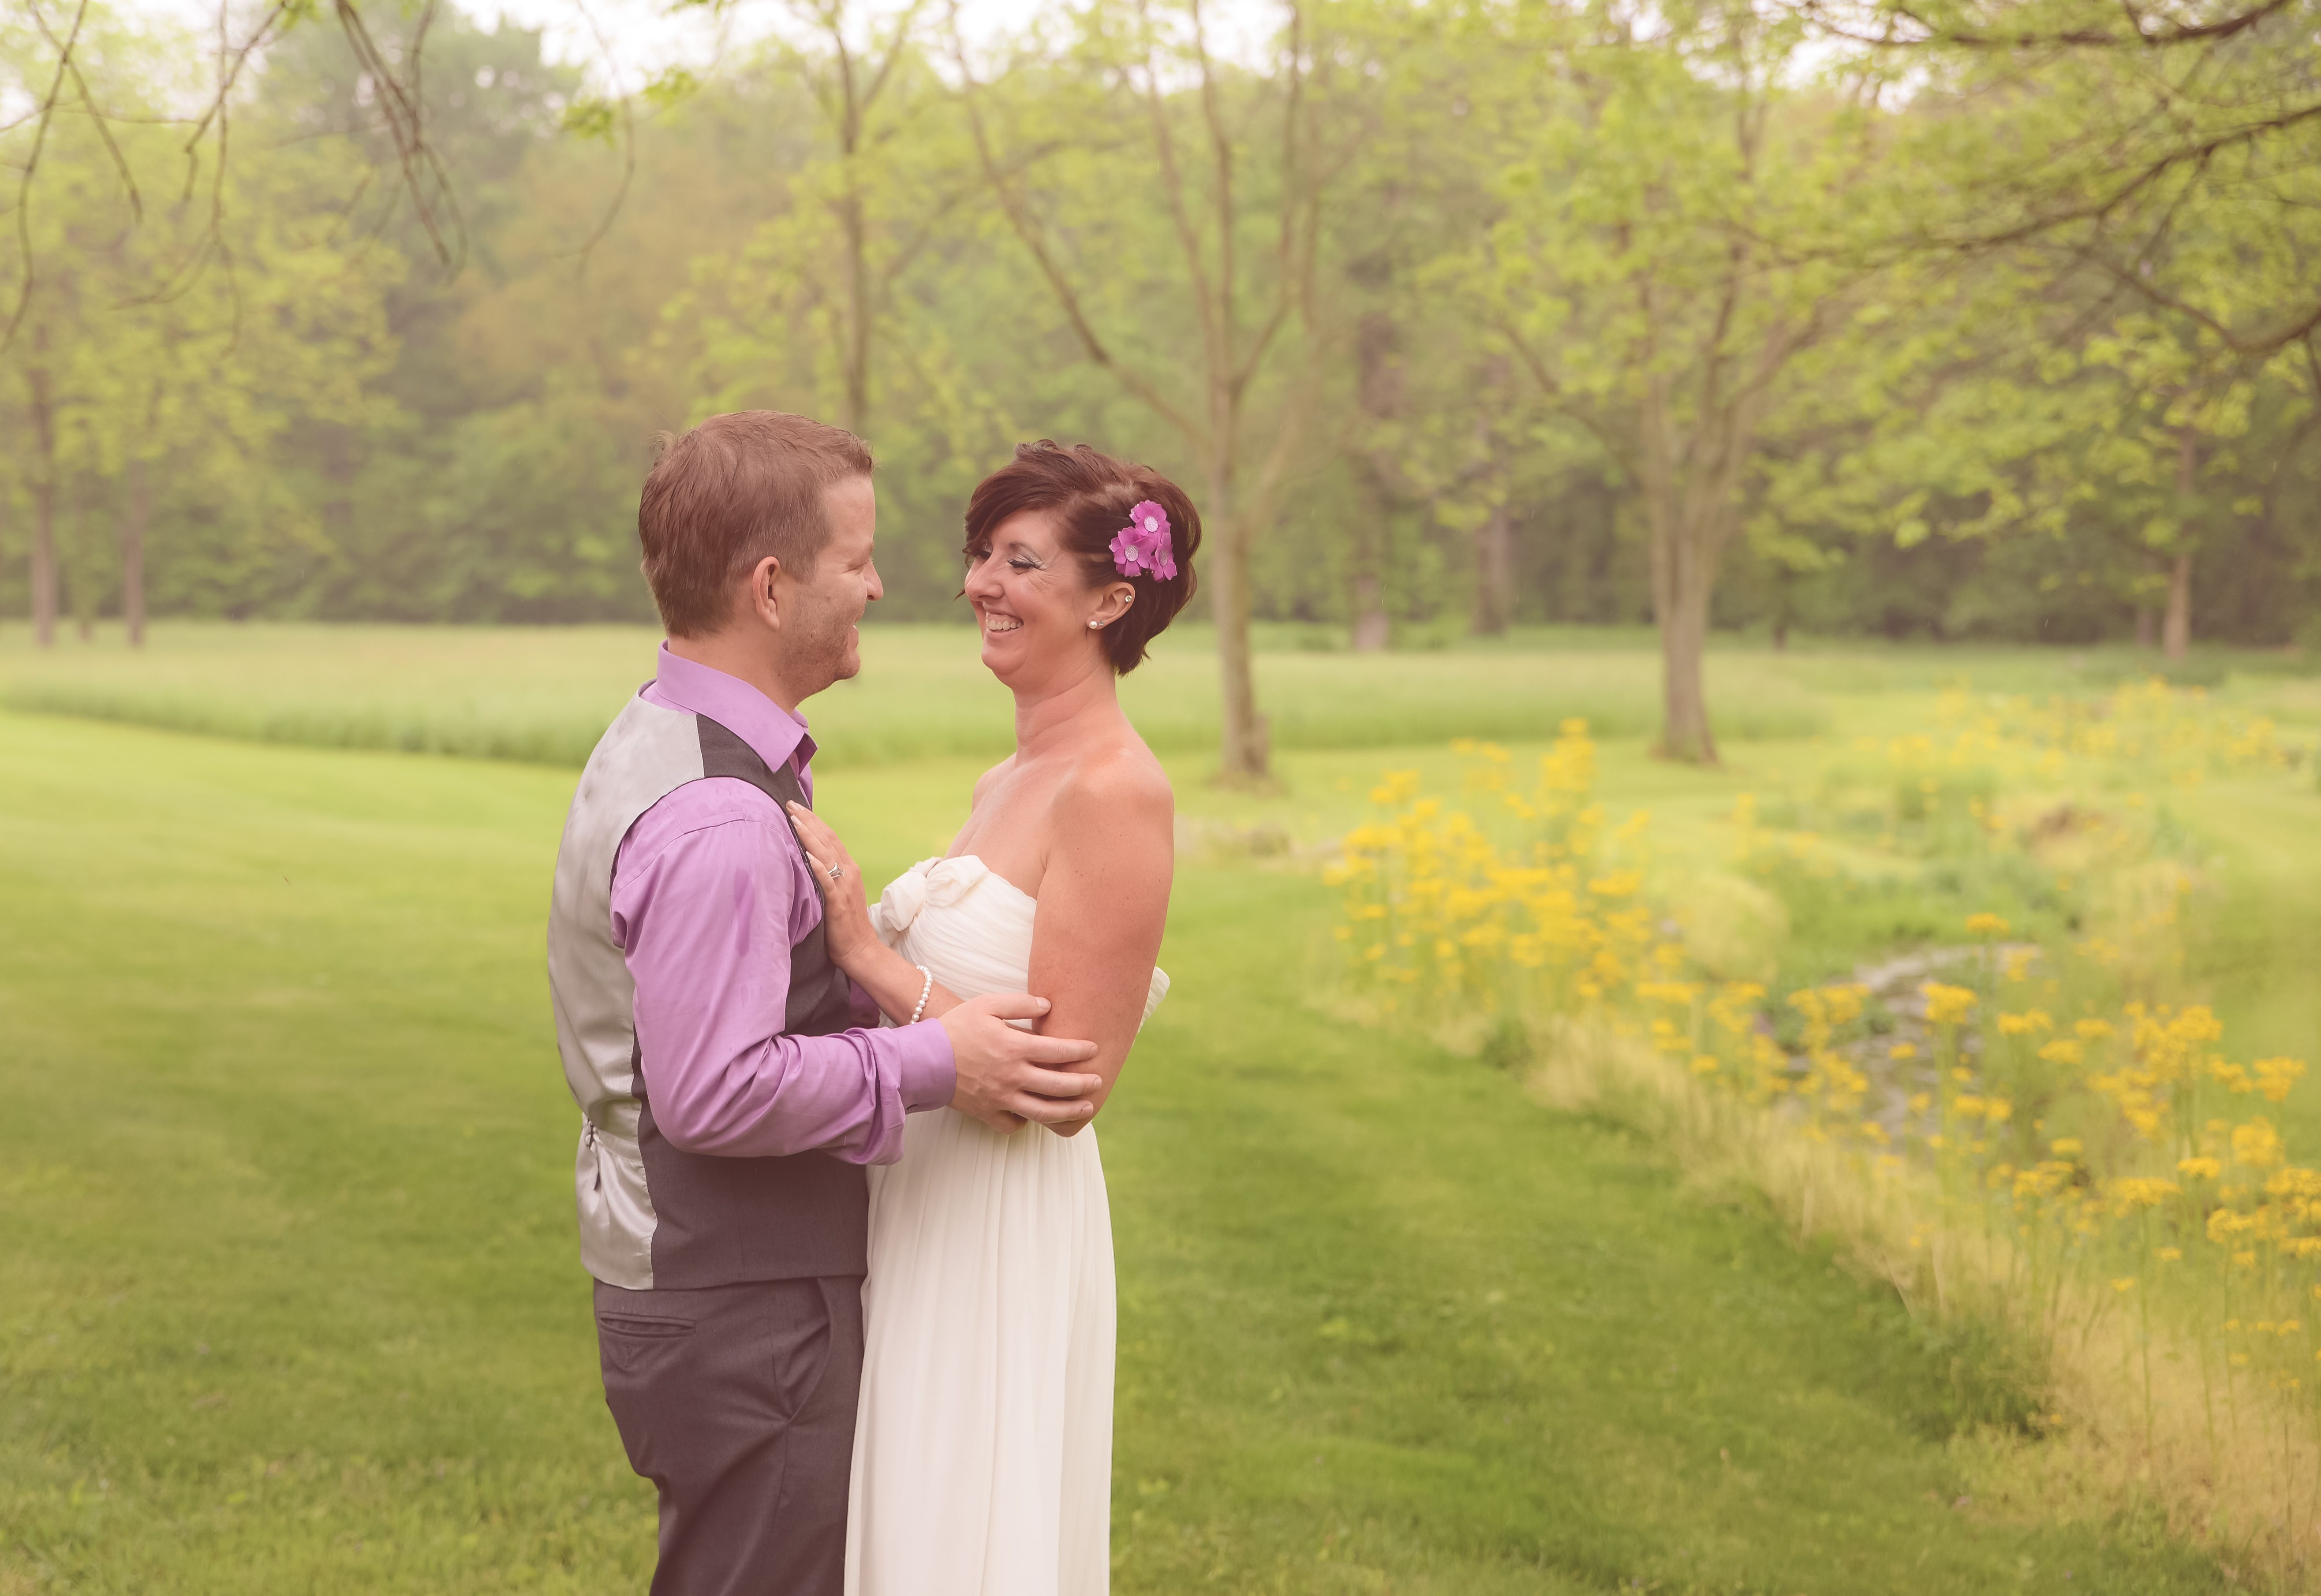 Find This Pin And More On Wedding Photography Lesli By Lmckinl